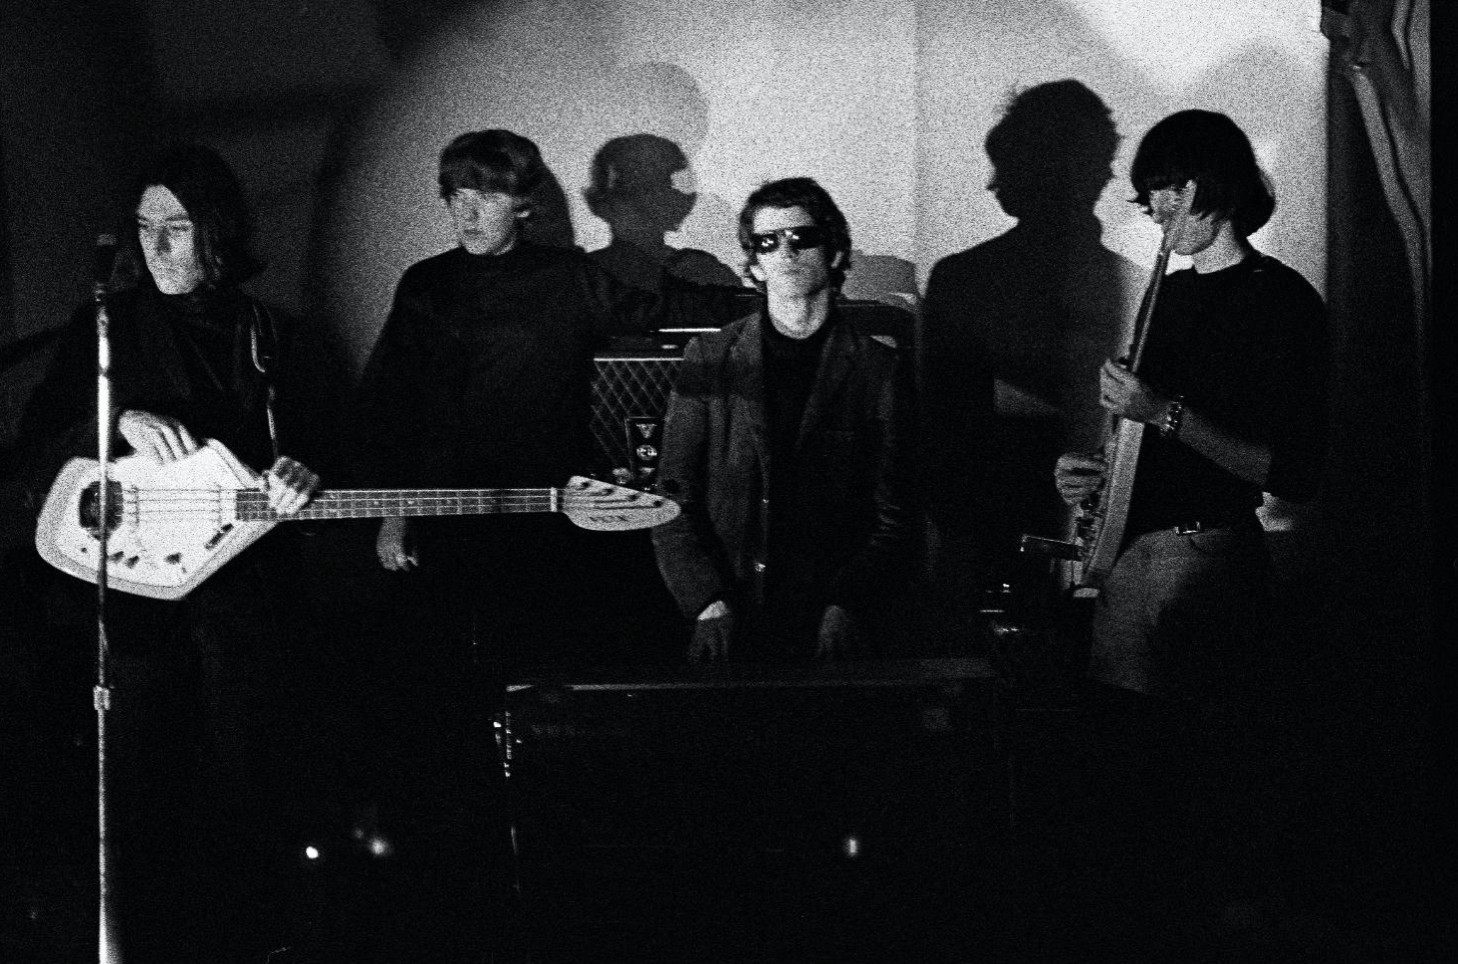 Velvet Underground, Rock music photo history 60s